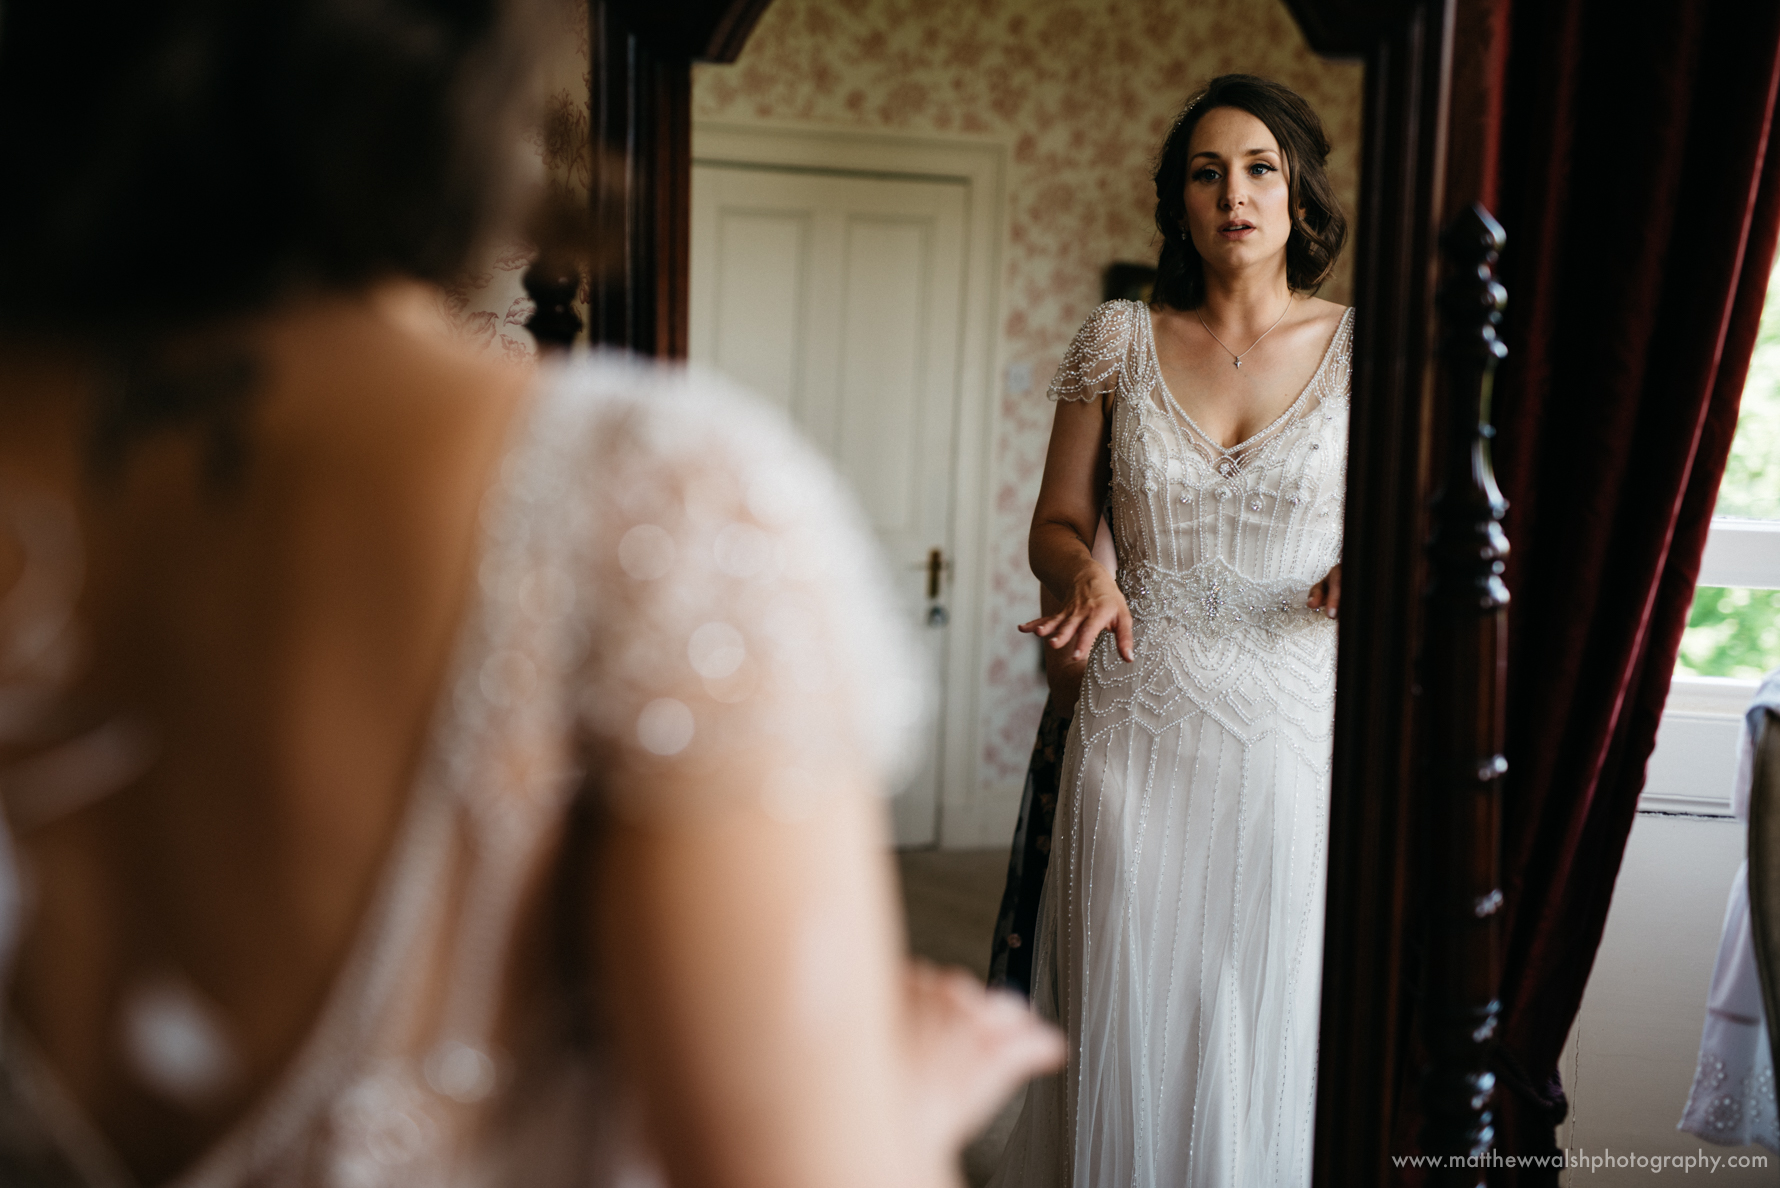 Bride looks in the mirror with her elegant wedding dress on looking a little nervous